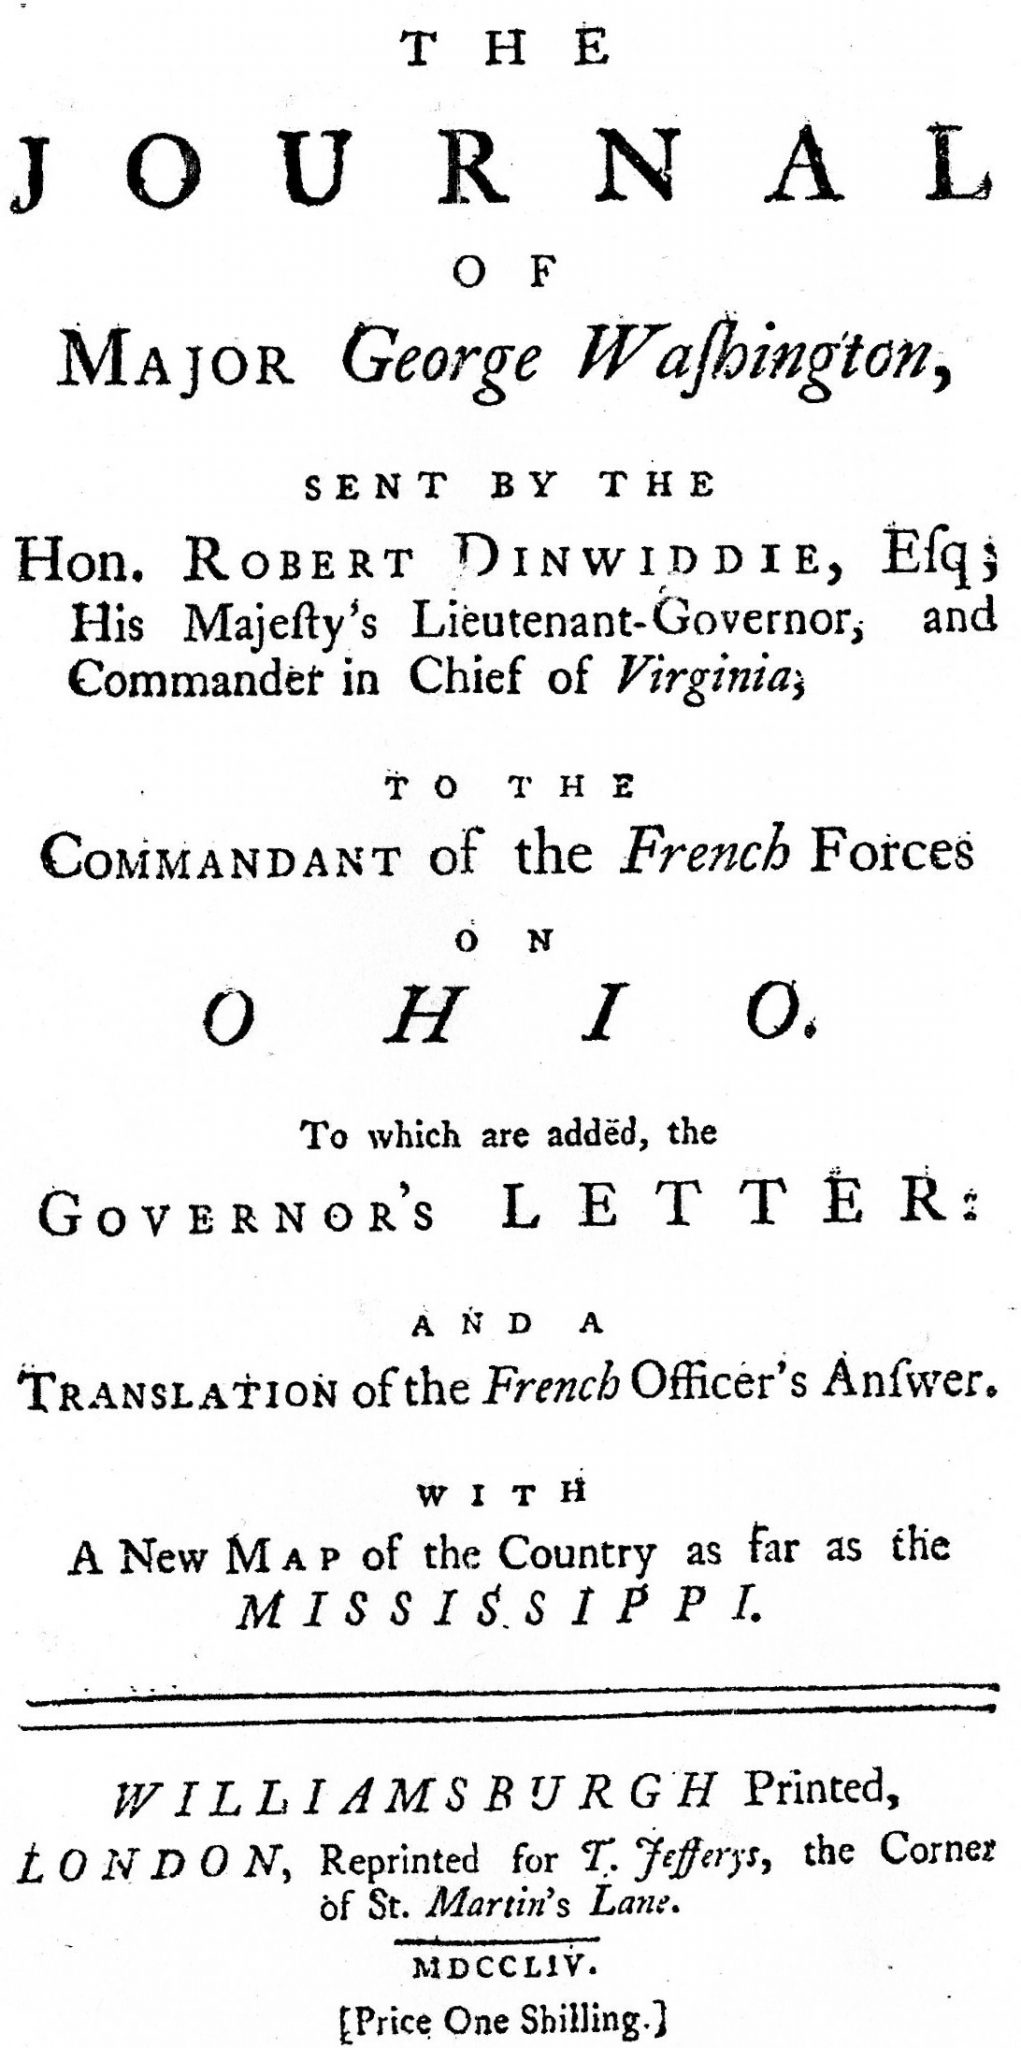 The Journal of Major George Washington, London, 1754